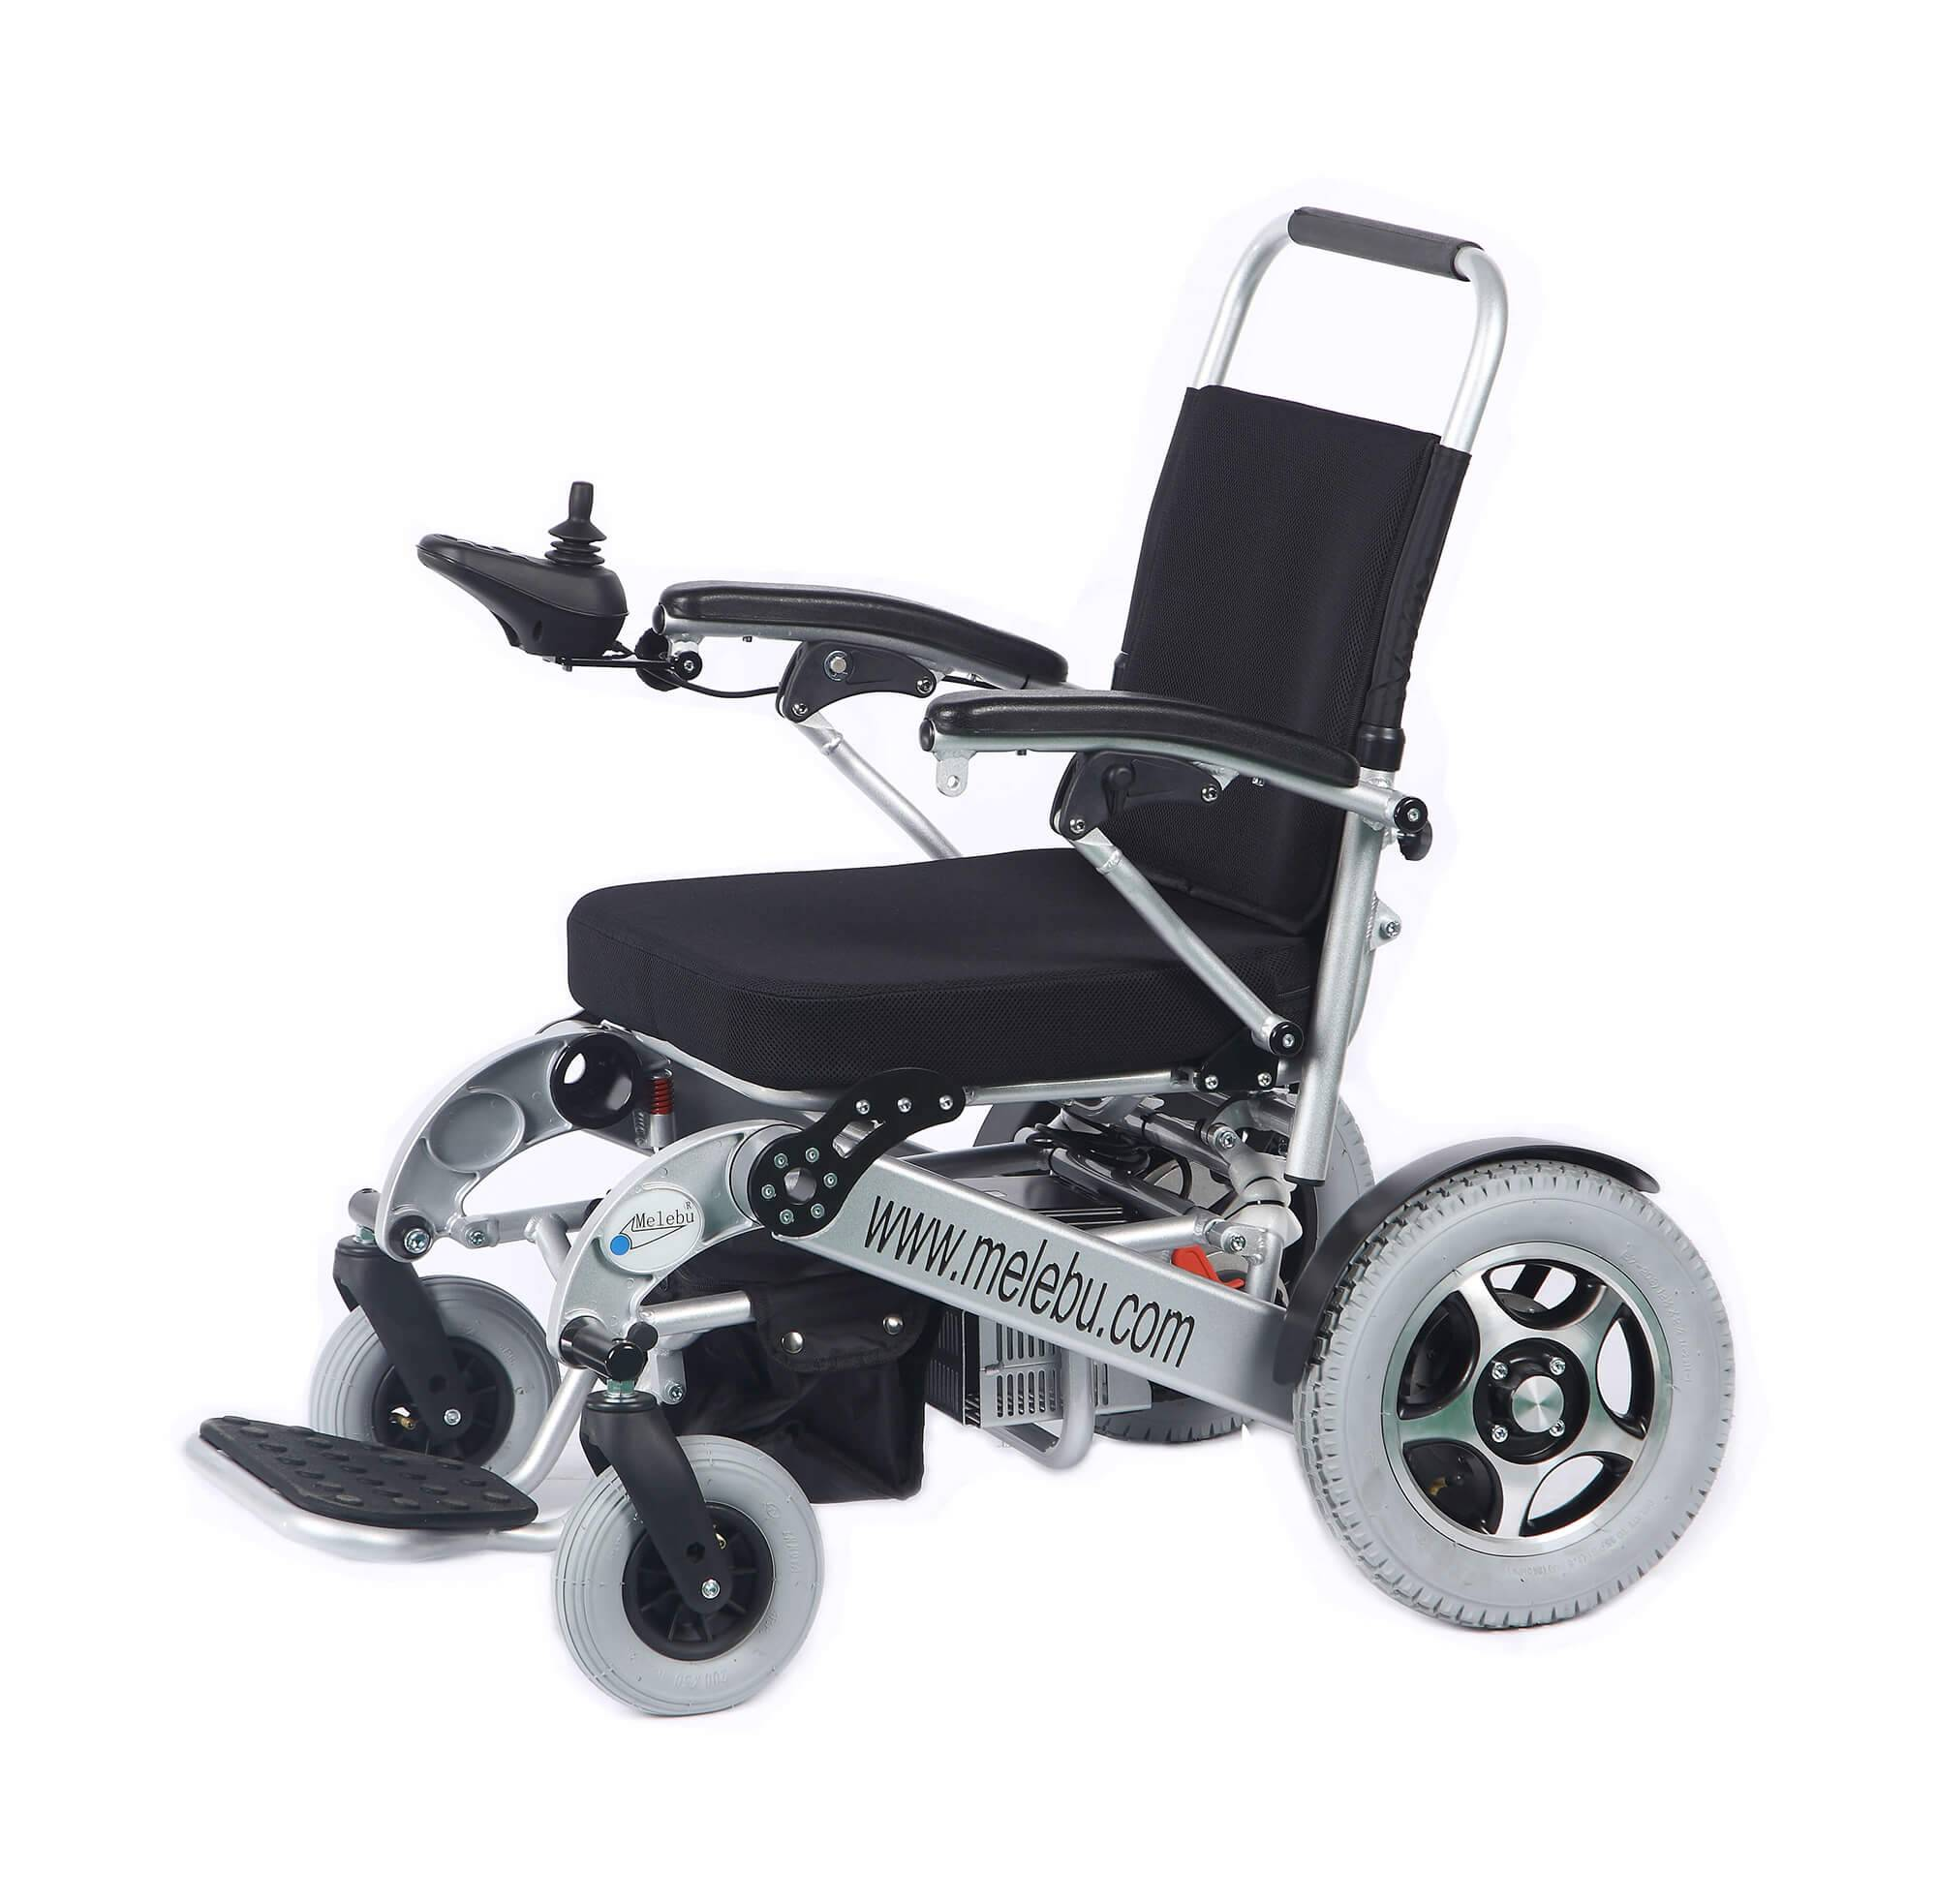 WFT-A08LHeavy Duty Folding Electric Wheelchair